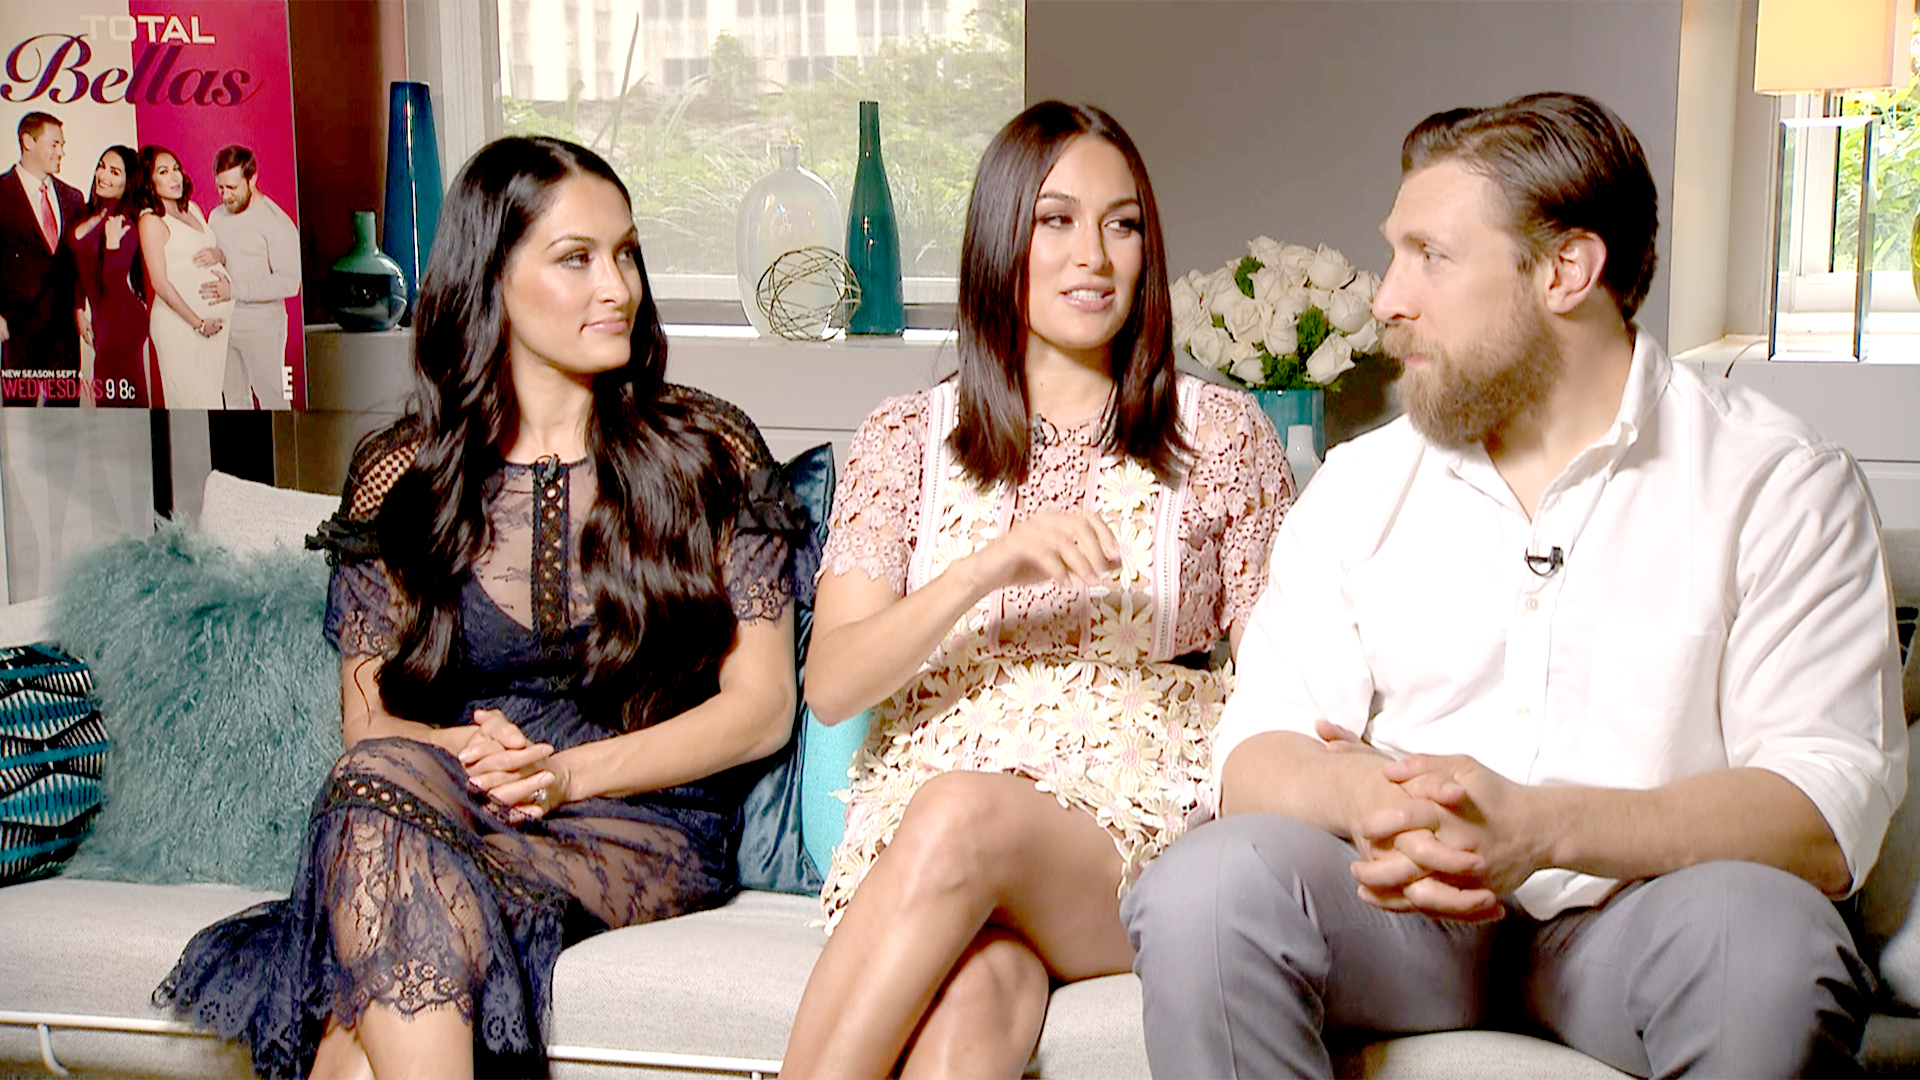 WWE Star Brie Bella Says She And Daniel Bryan Are Growing Apart 2